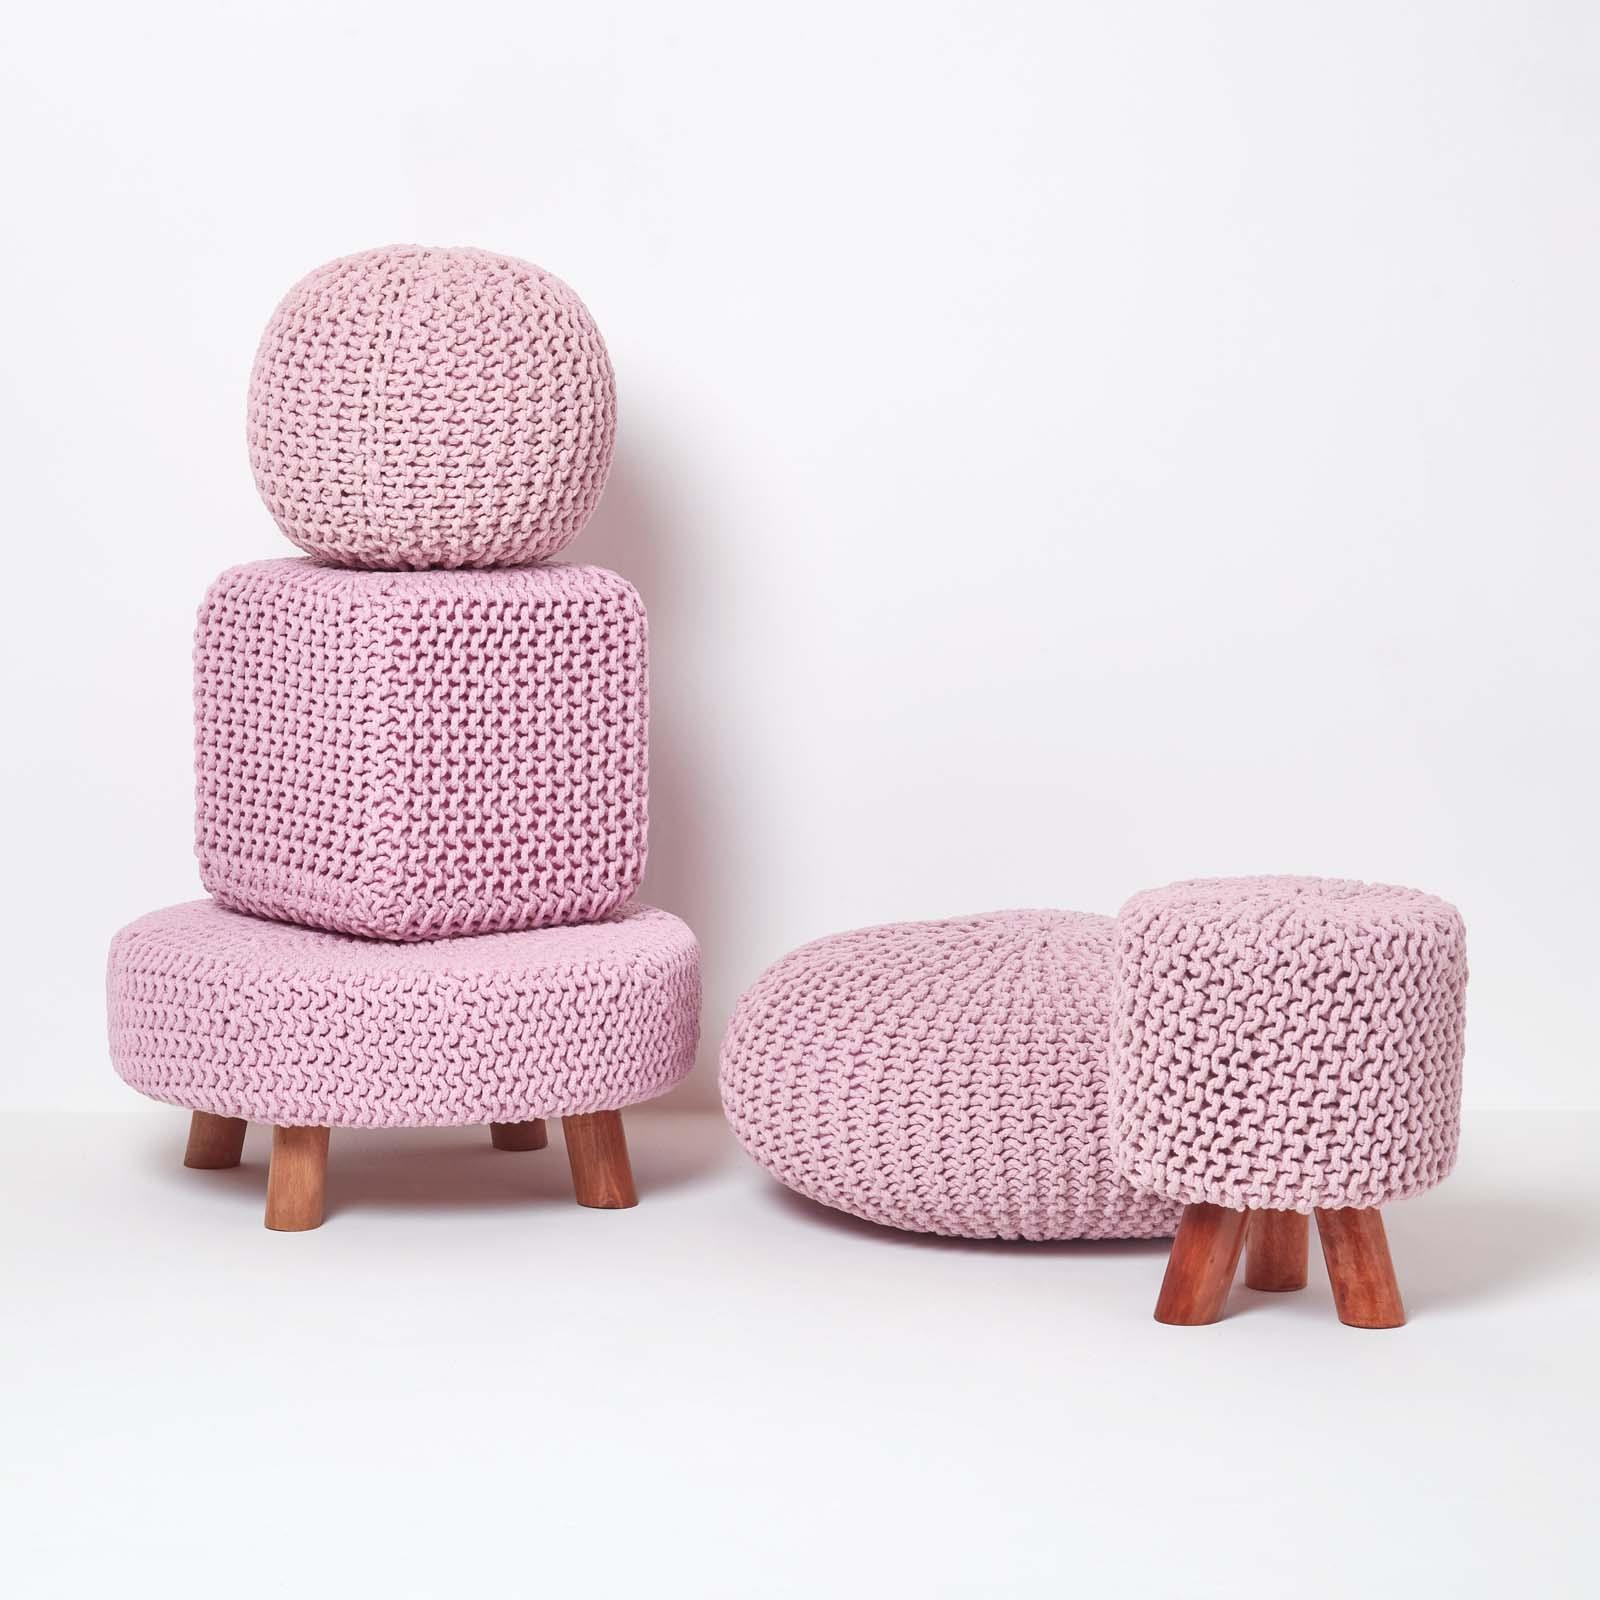 Hand-Knitted-100-Cotton-Pouffes-Round-Sphere-Or-Cube-Square-Chunky-Footstools thumbnail 144